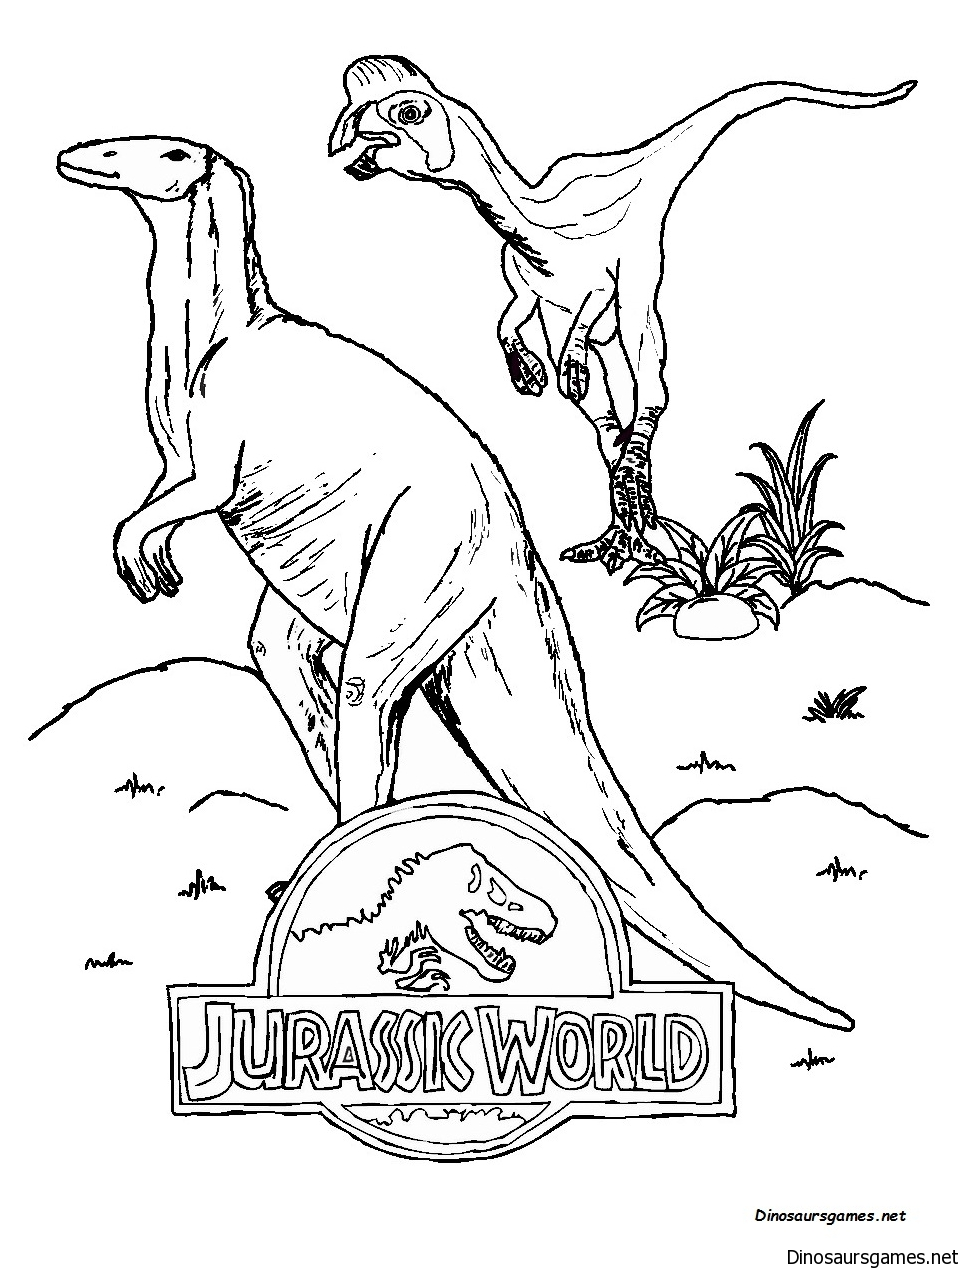 Jurassic World 2 Coloring Page